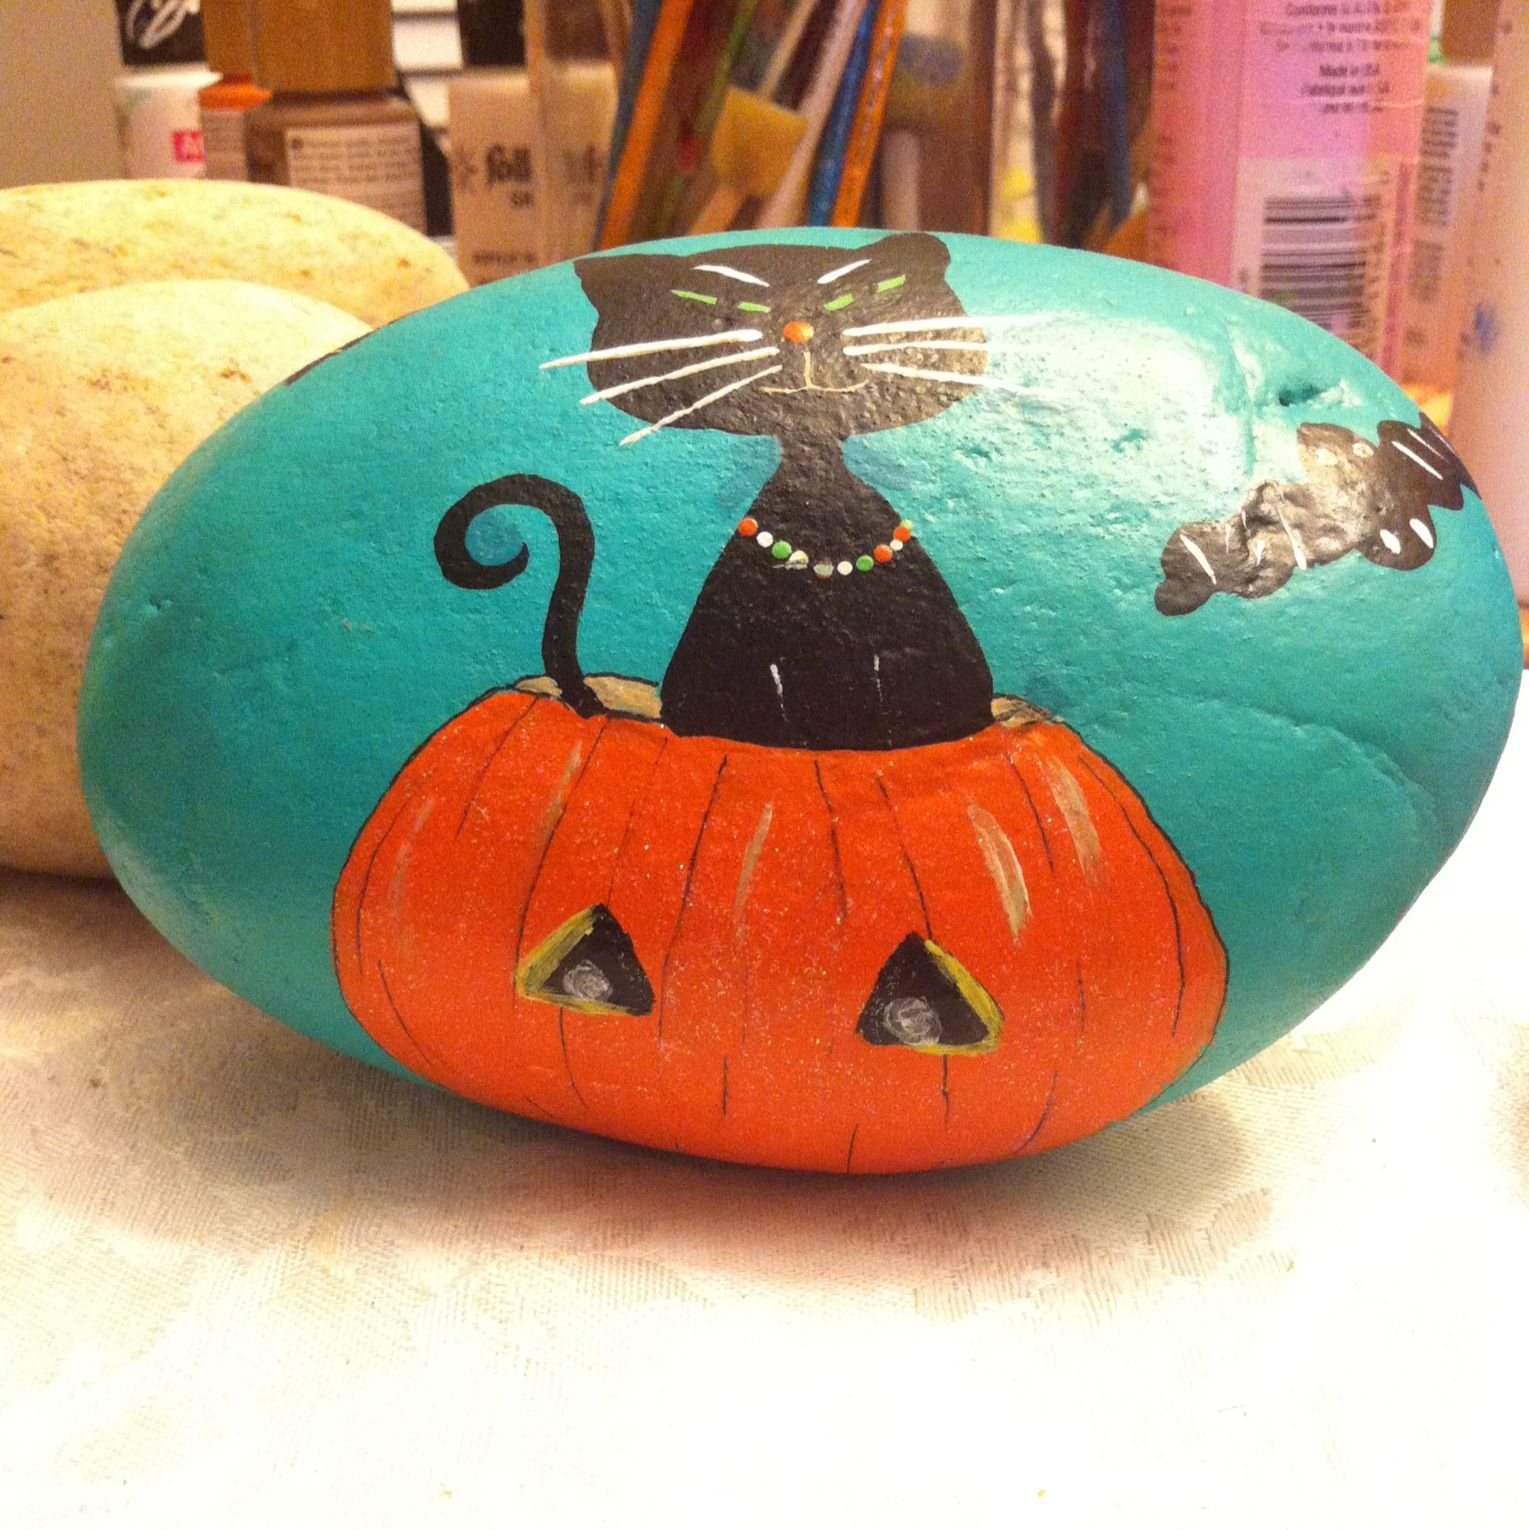 Halloween Kitty Painted Rock 画像あり 黒猫